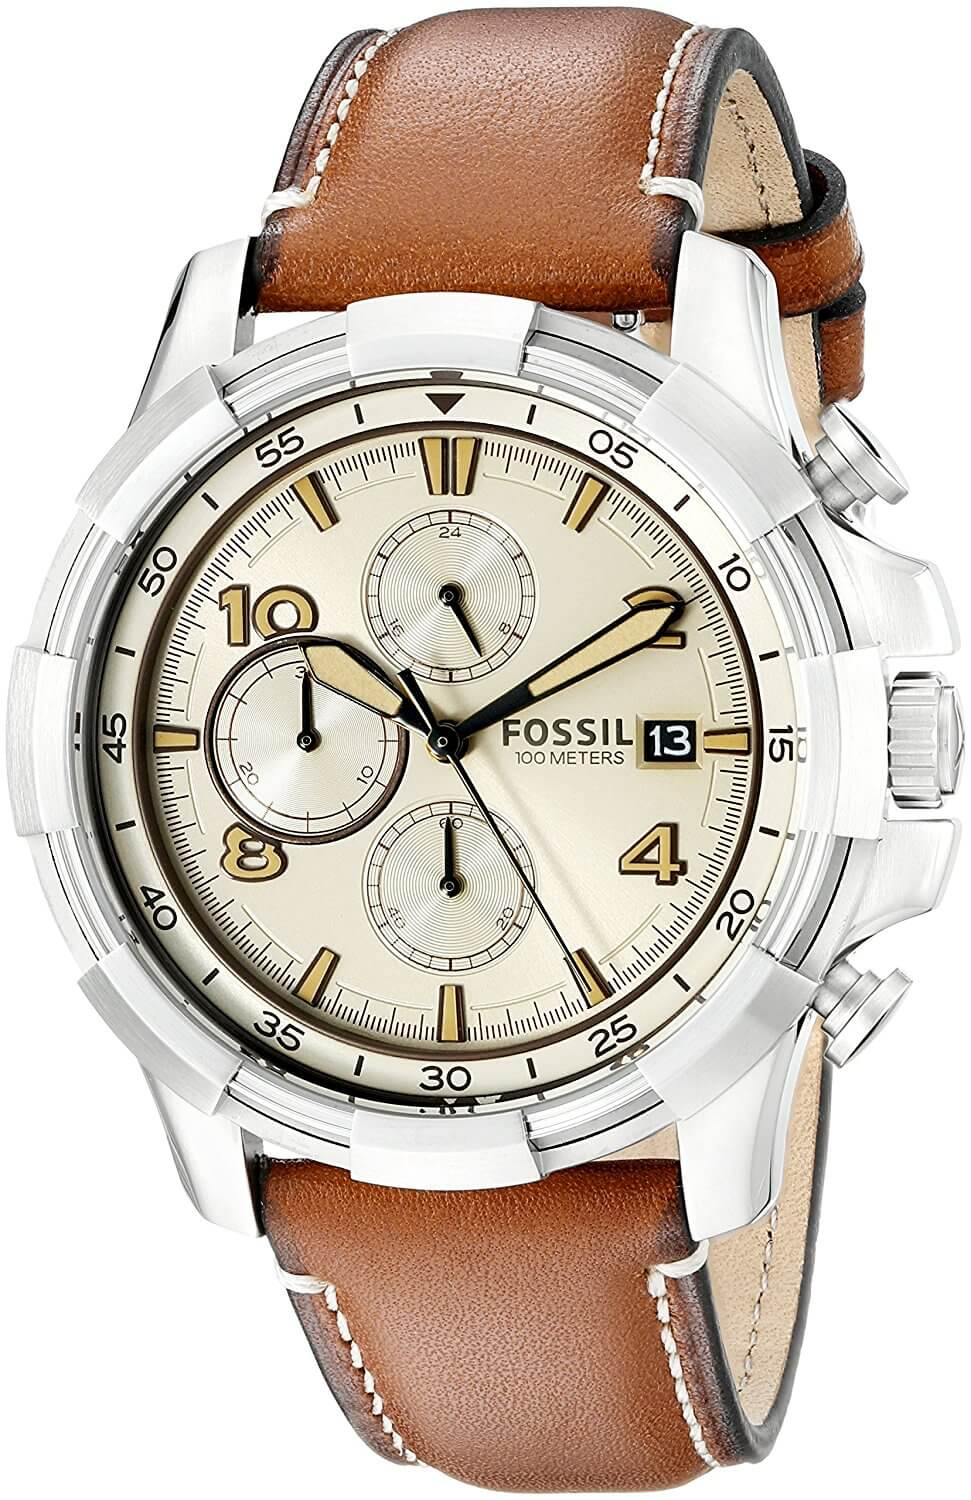 Fossil Watches – Min 35% Off For Men & Women